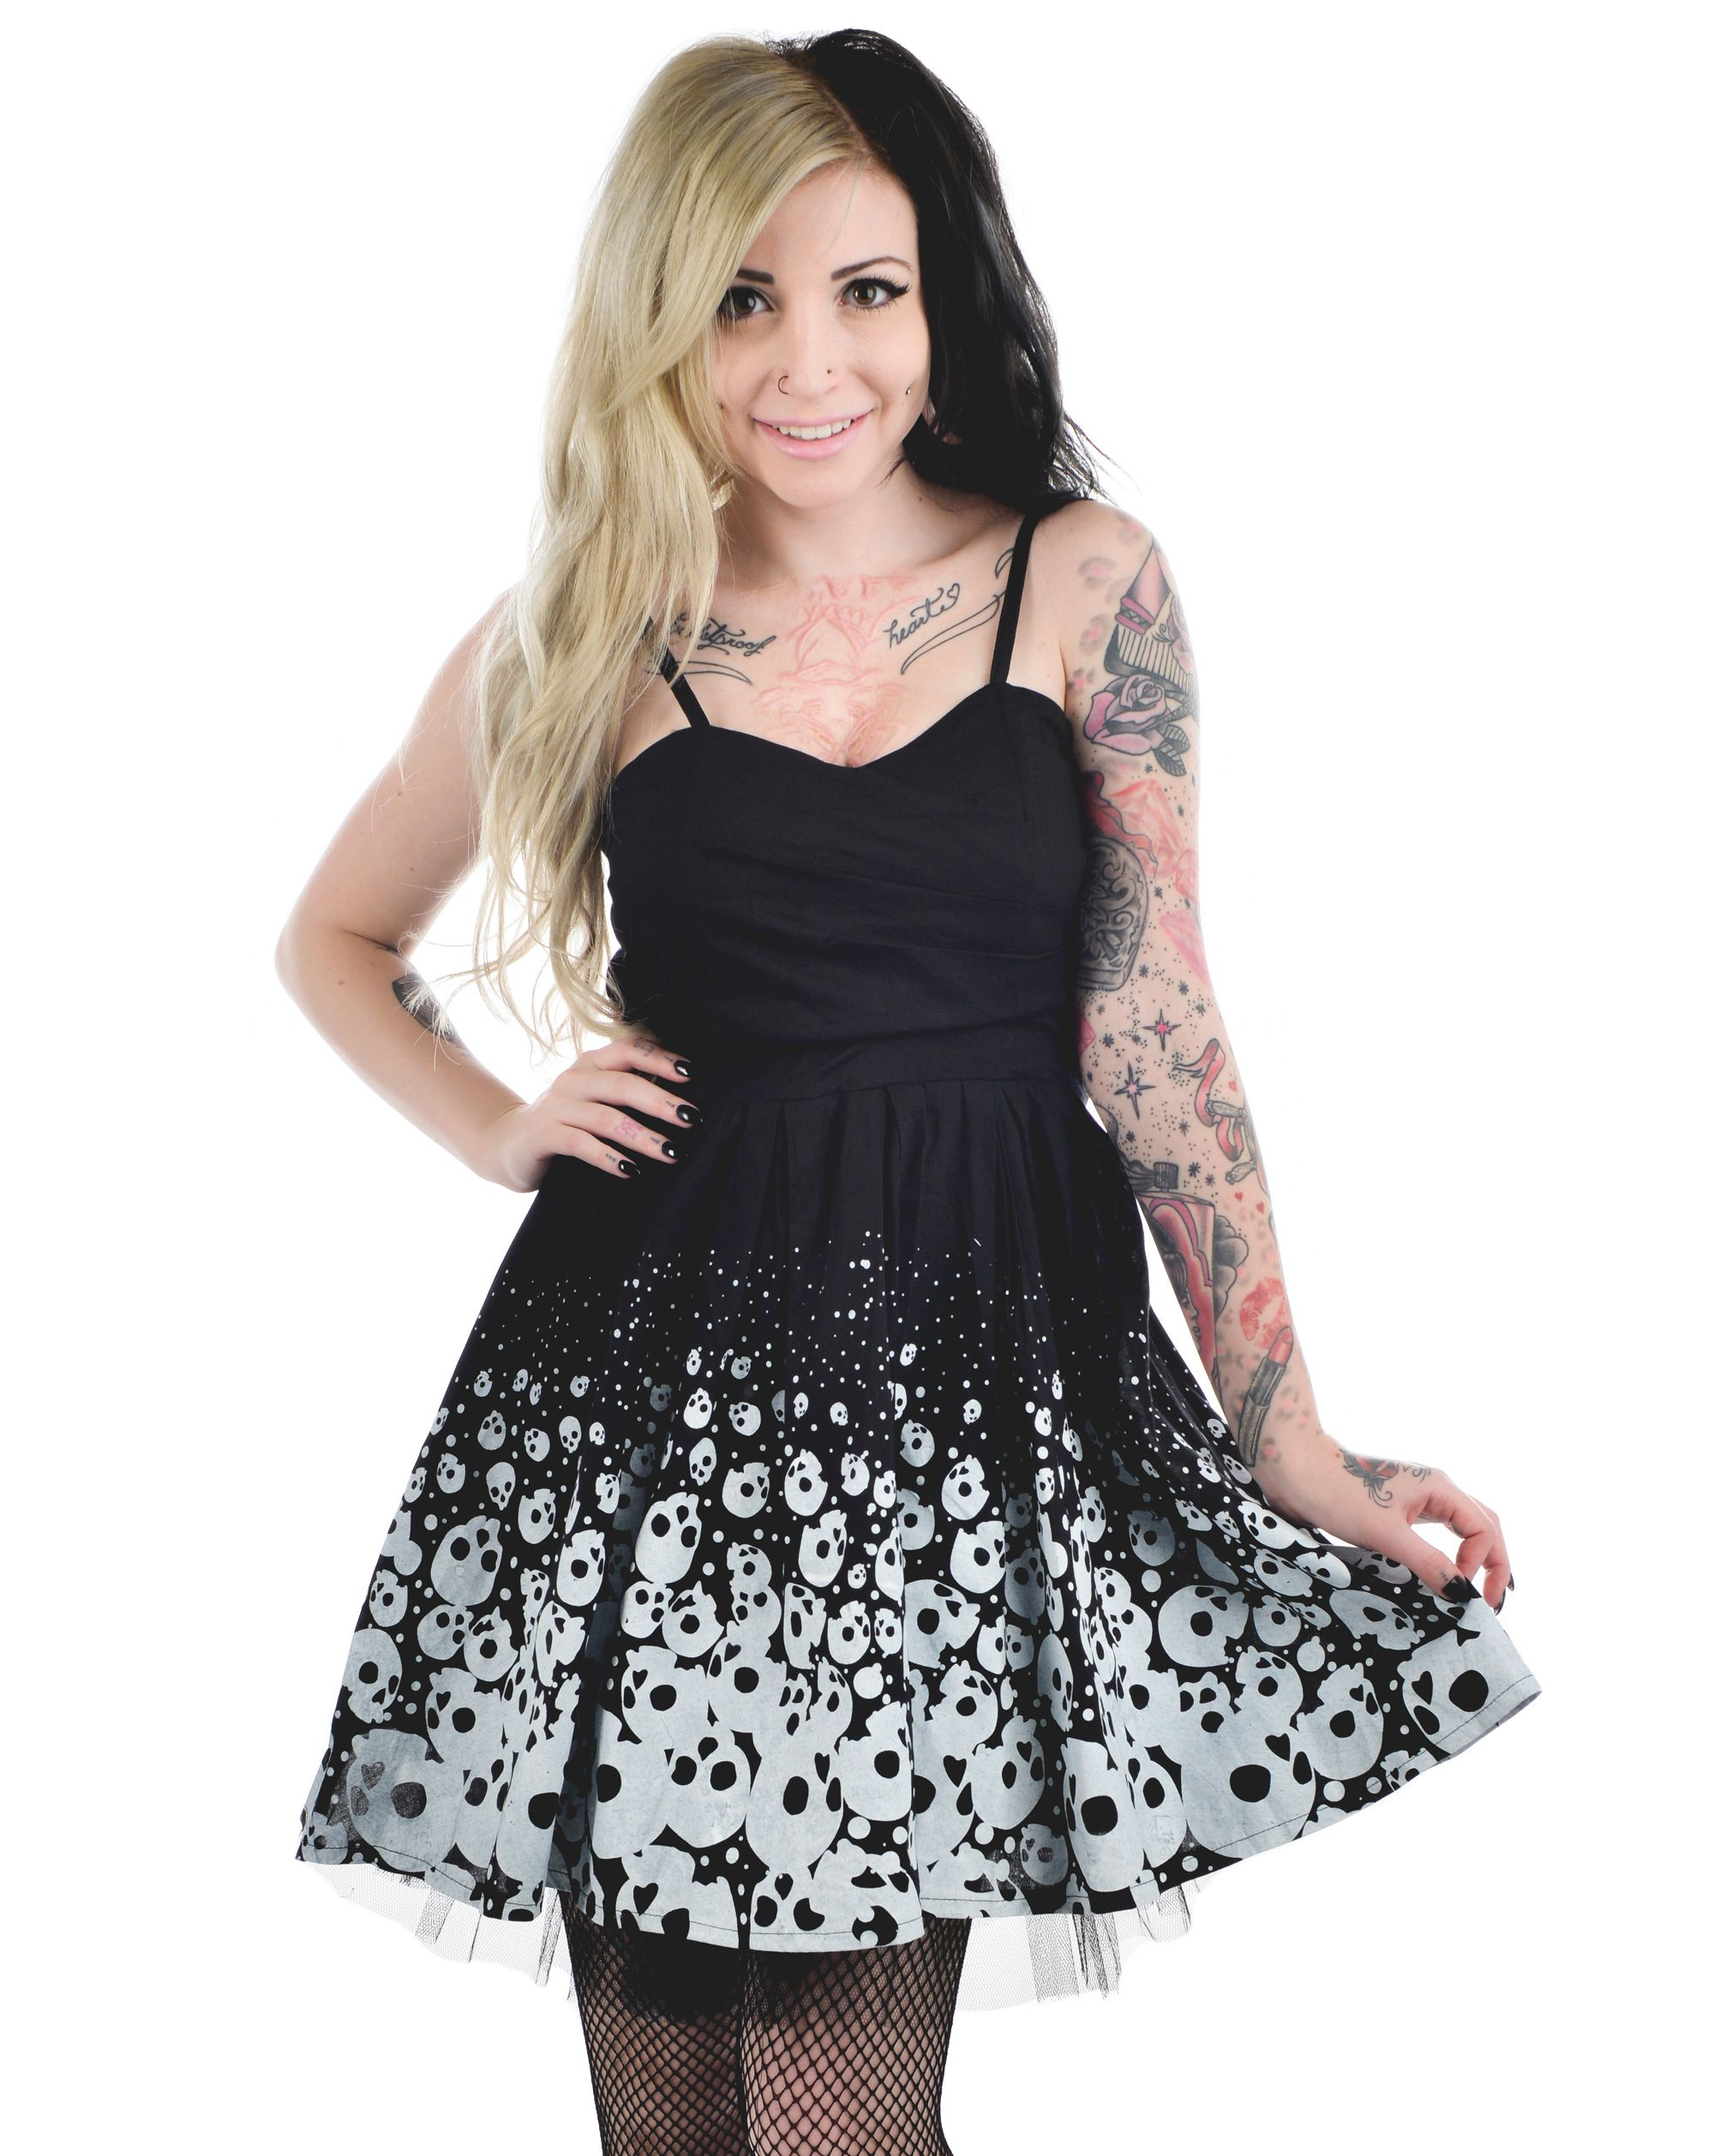 Who knew skulls could be such cute little things? And on a dress too!? Oh my.